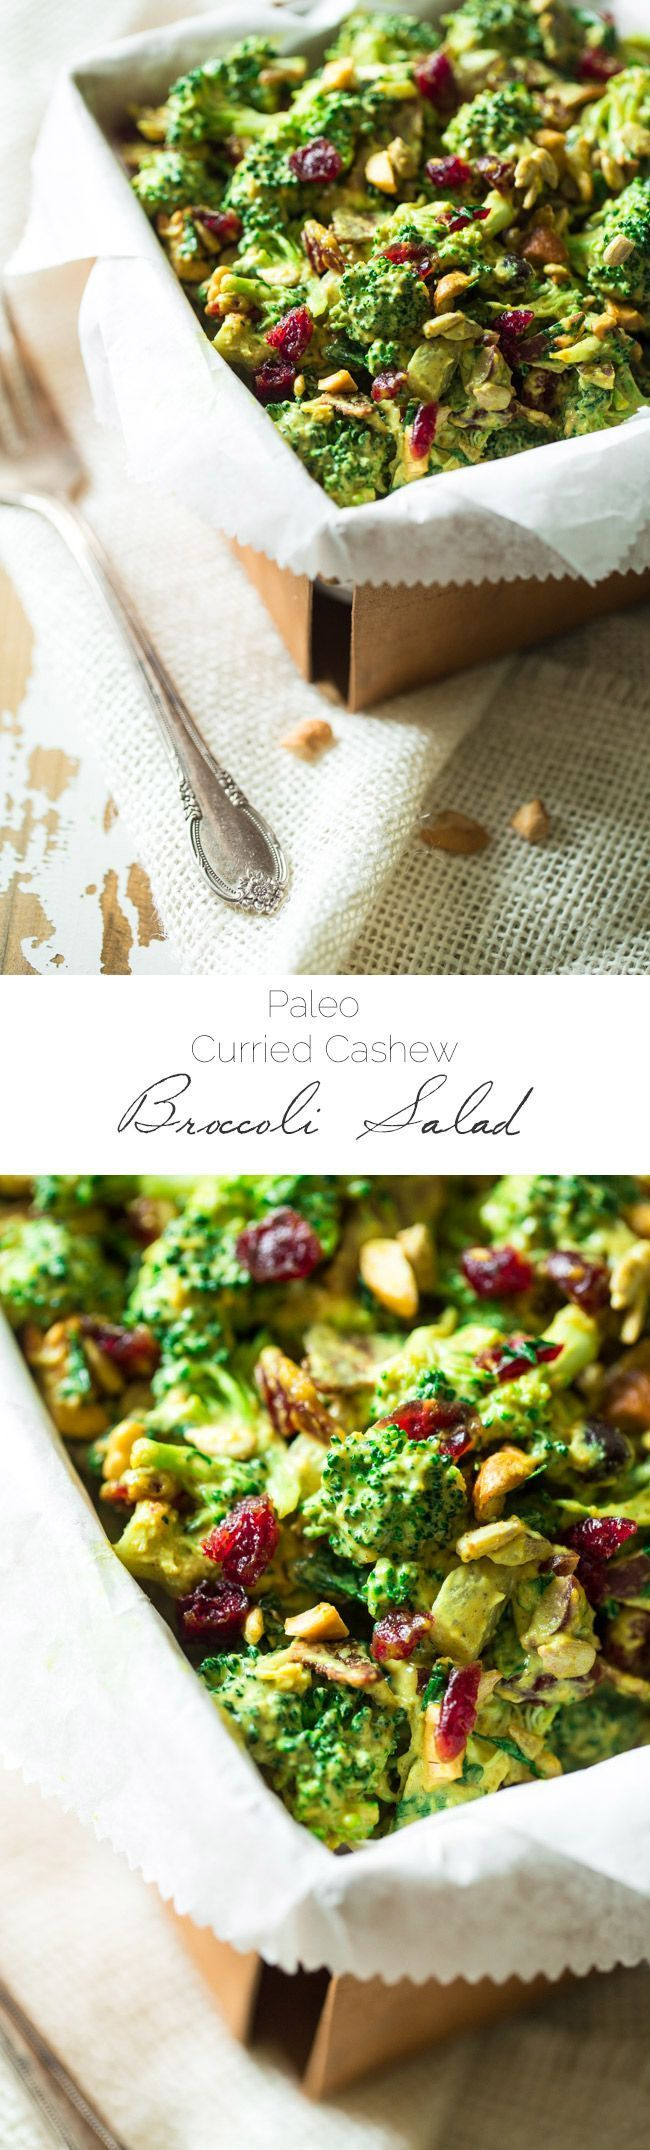 This paleo, healthy Broccoli Salad is jazzed up with a curried cashew cream dressing. It's a quick and easy side dish that is always a crowd pleaser! | http://WholeYum.com